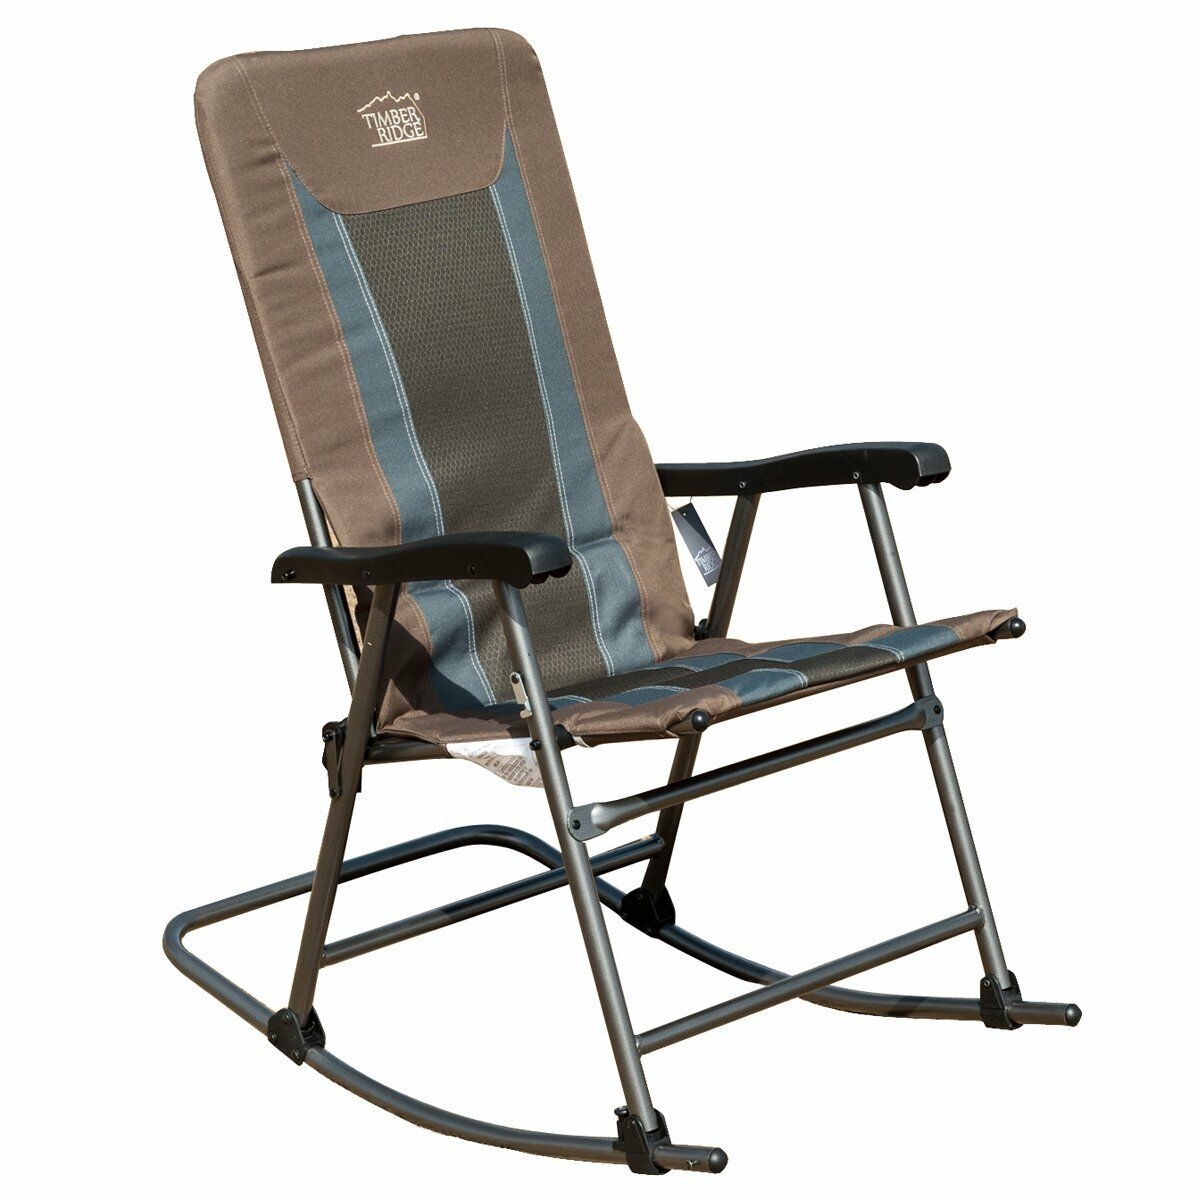 Folding Camping High Chair Timber Ridge Smooth Glide Lightweight Padded Folding